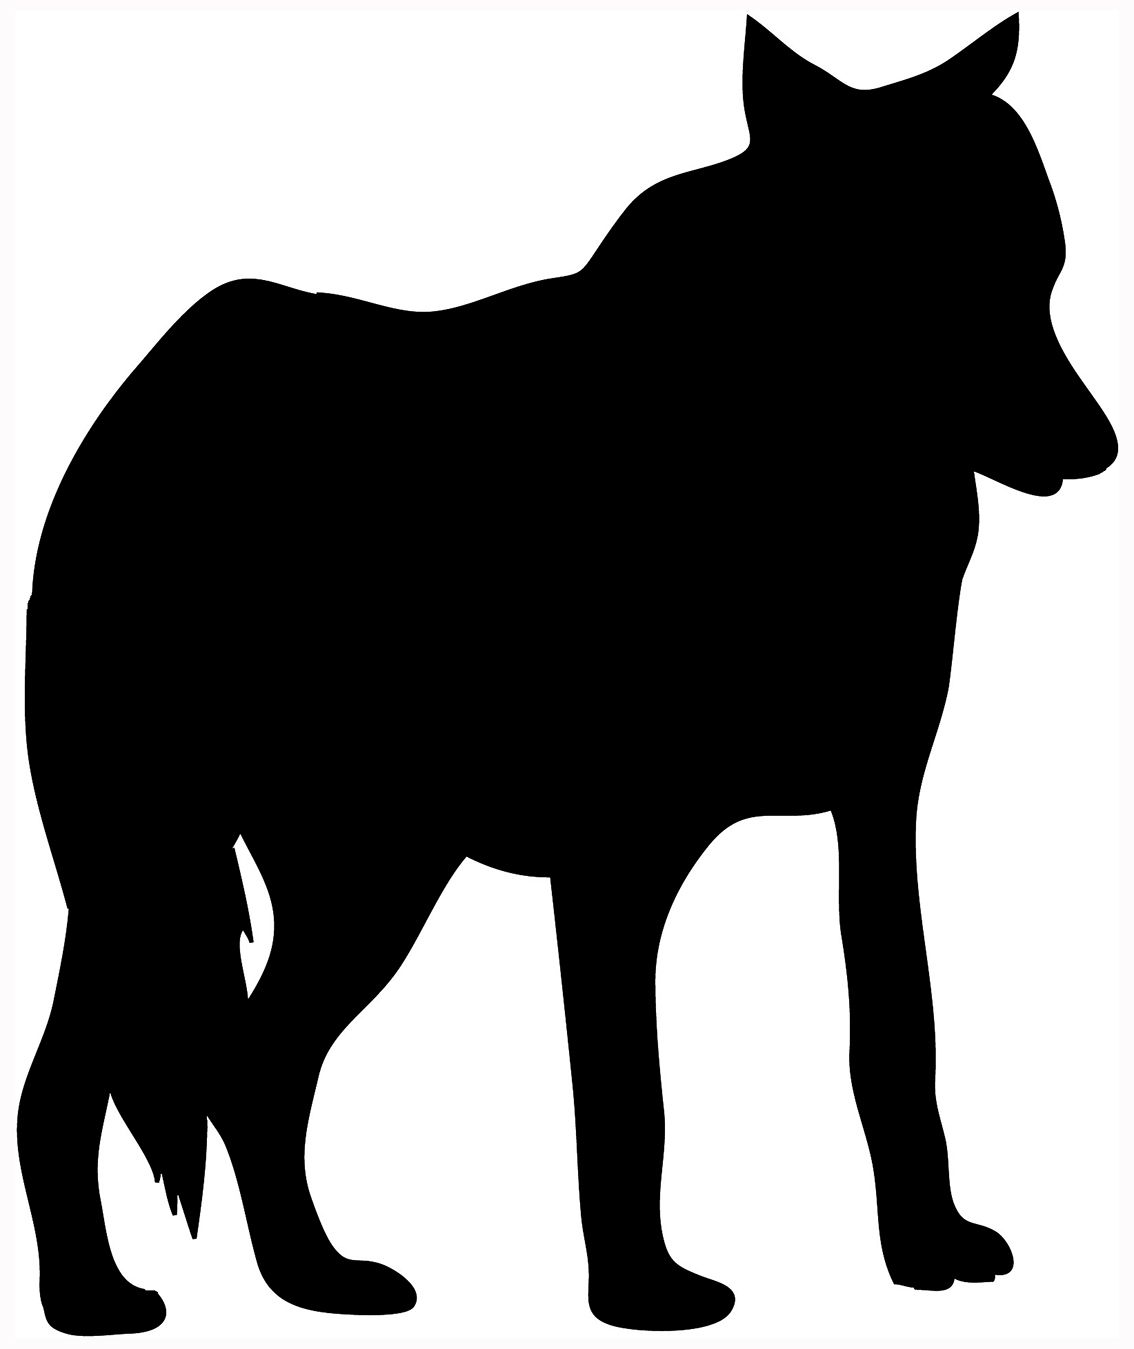 animal silhouettes from our tattoo galleries clipart best rh pinterest com animal silhouette clipart animal silhouette clip art free